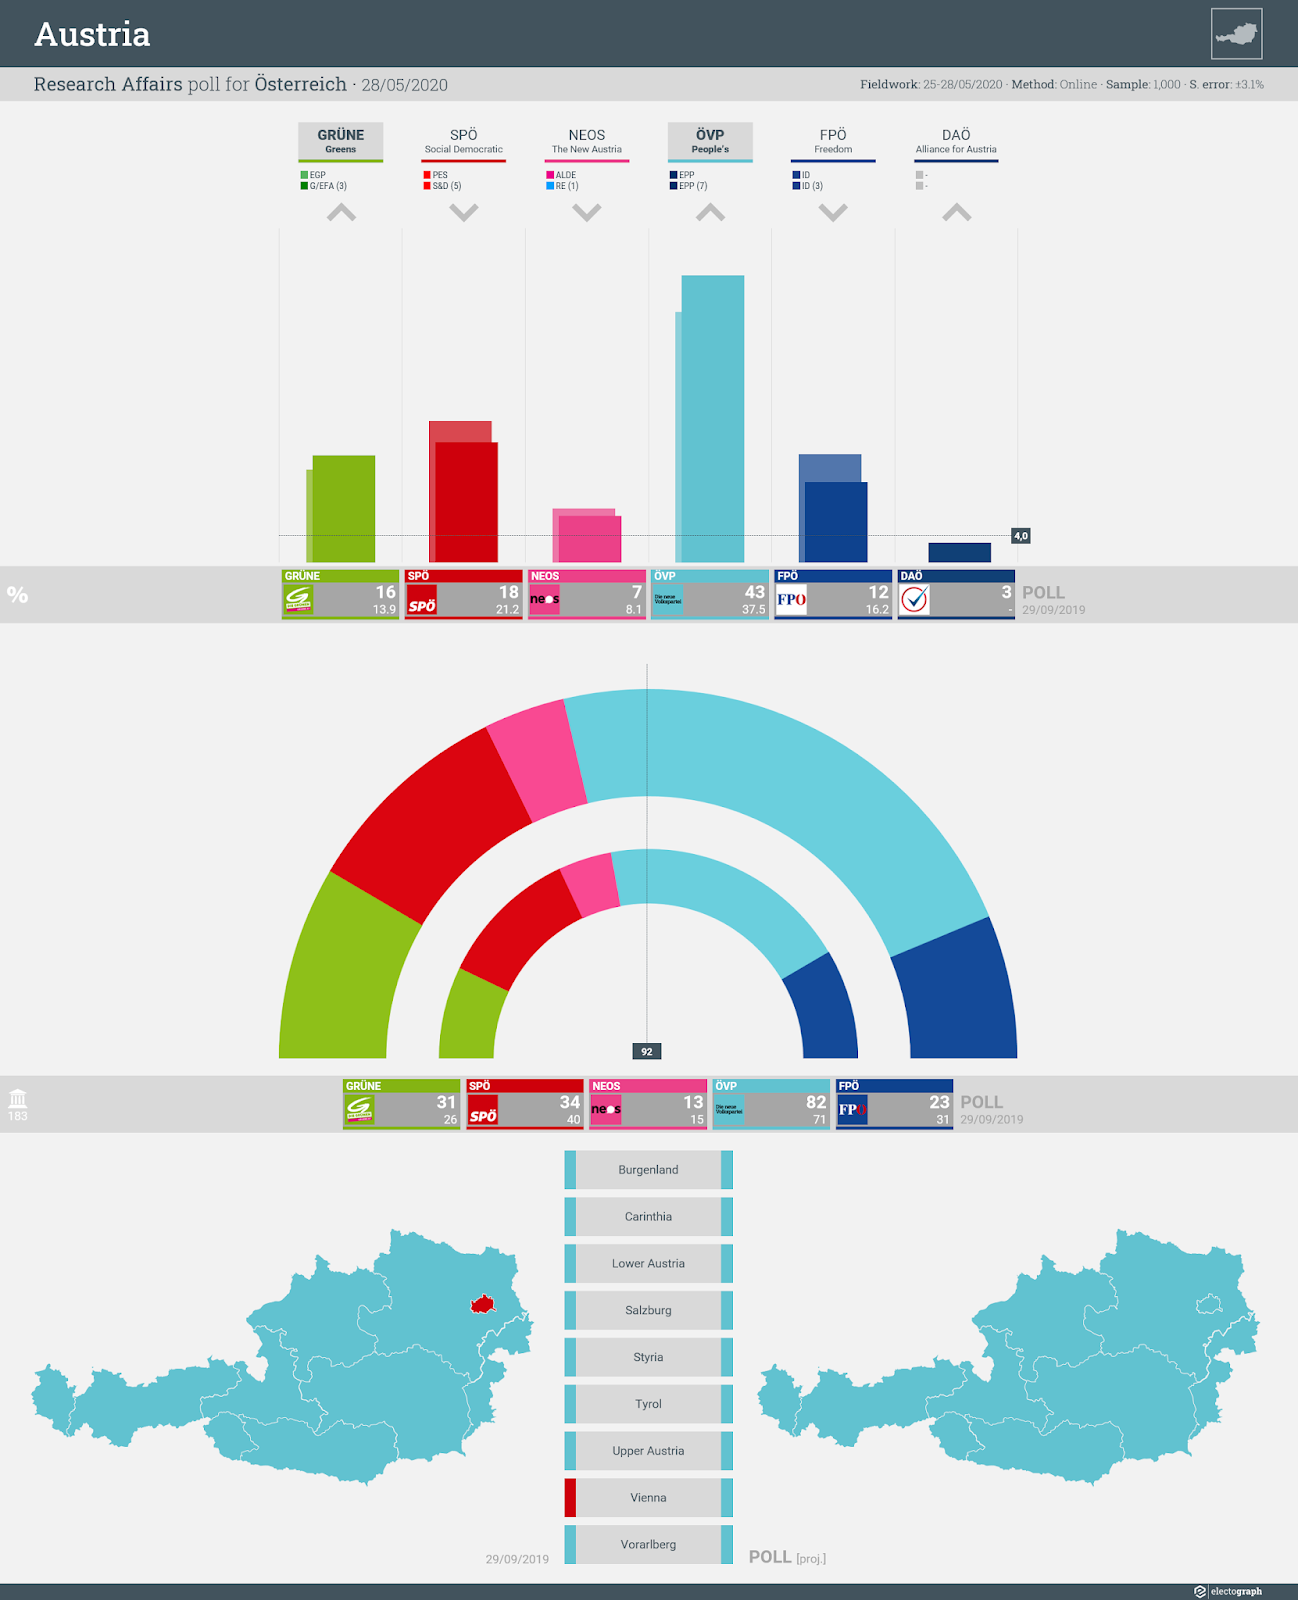 AUSTRIA: Research Affairs poll chart for Österreich, 28 May 2020